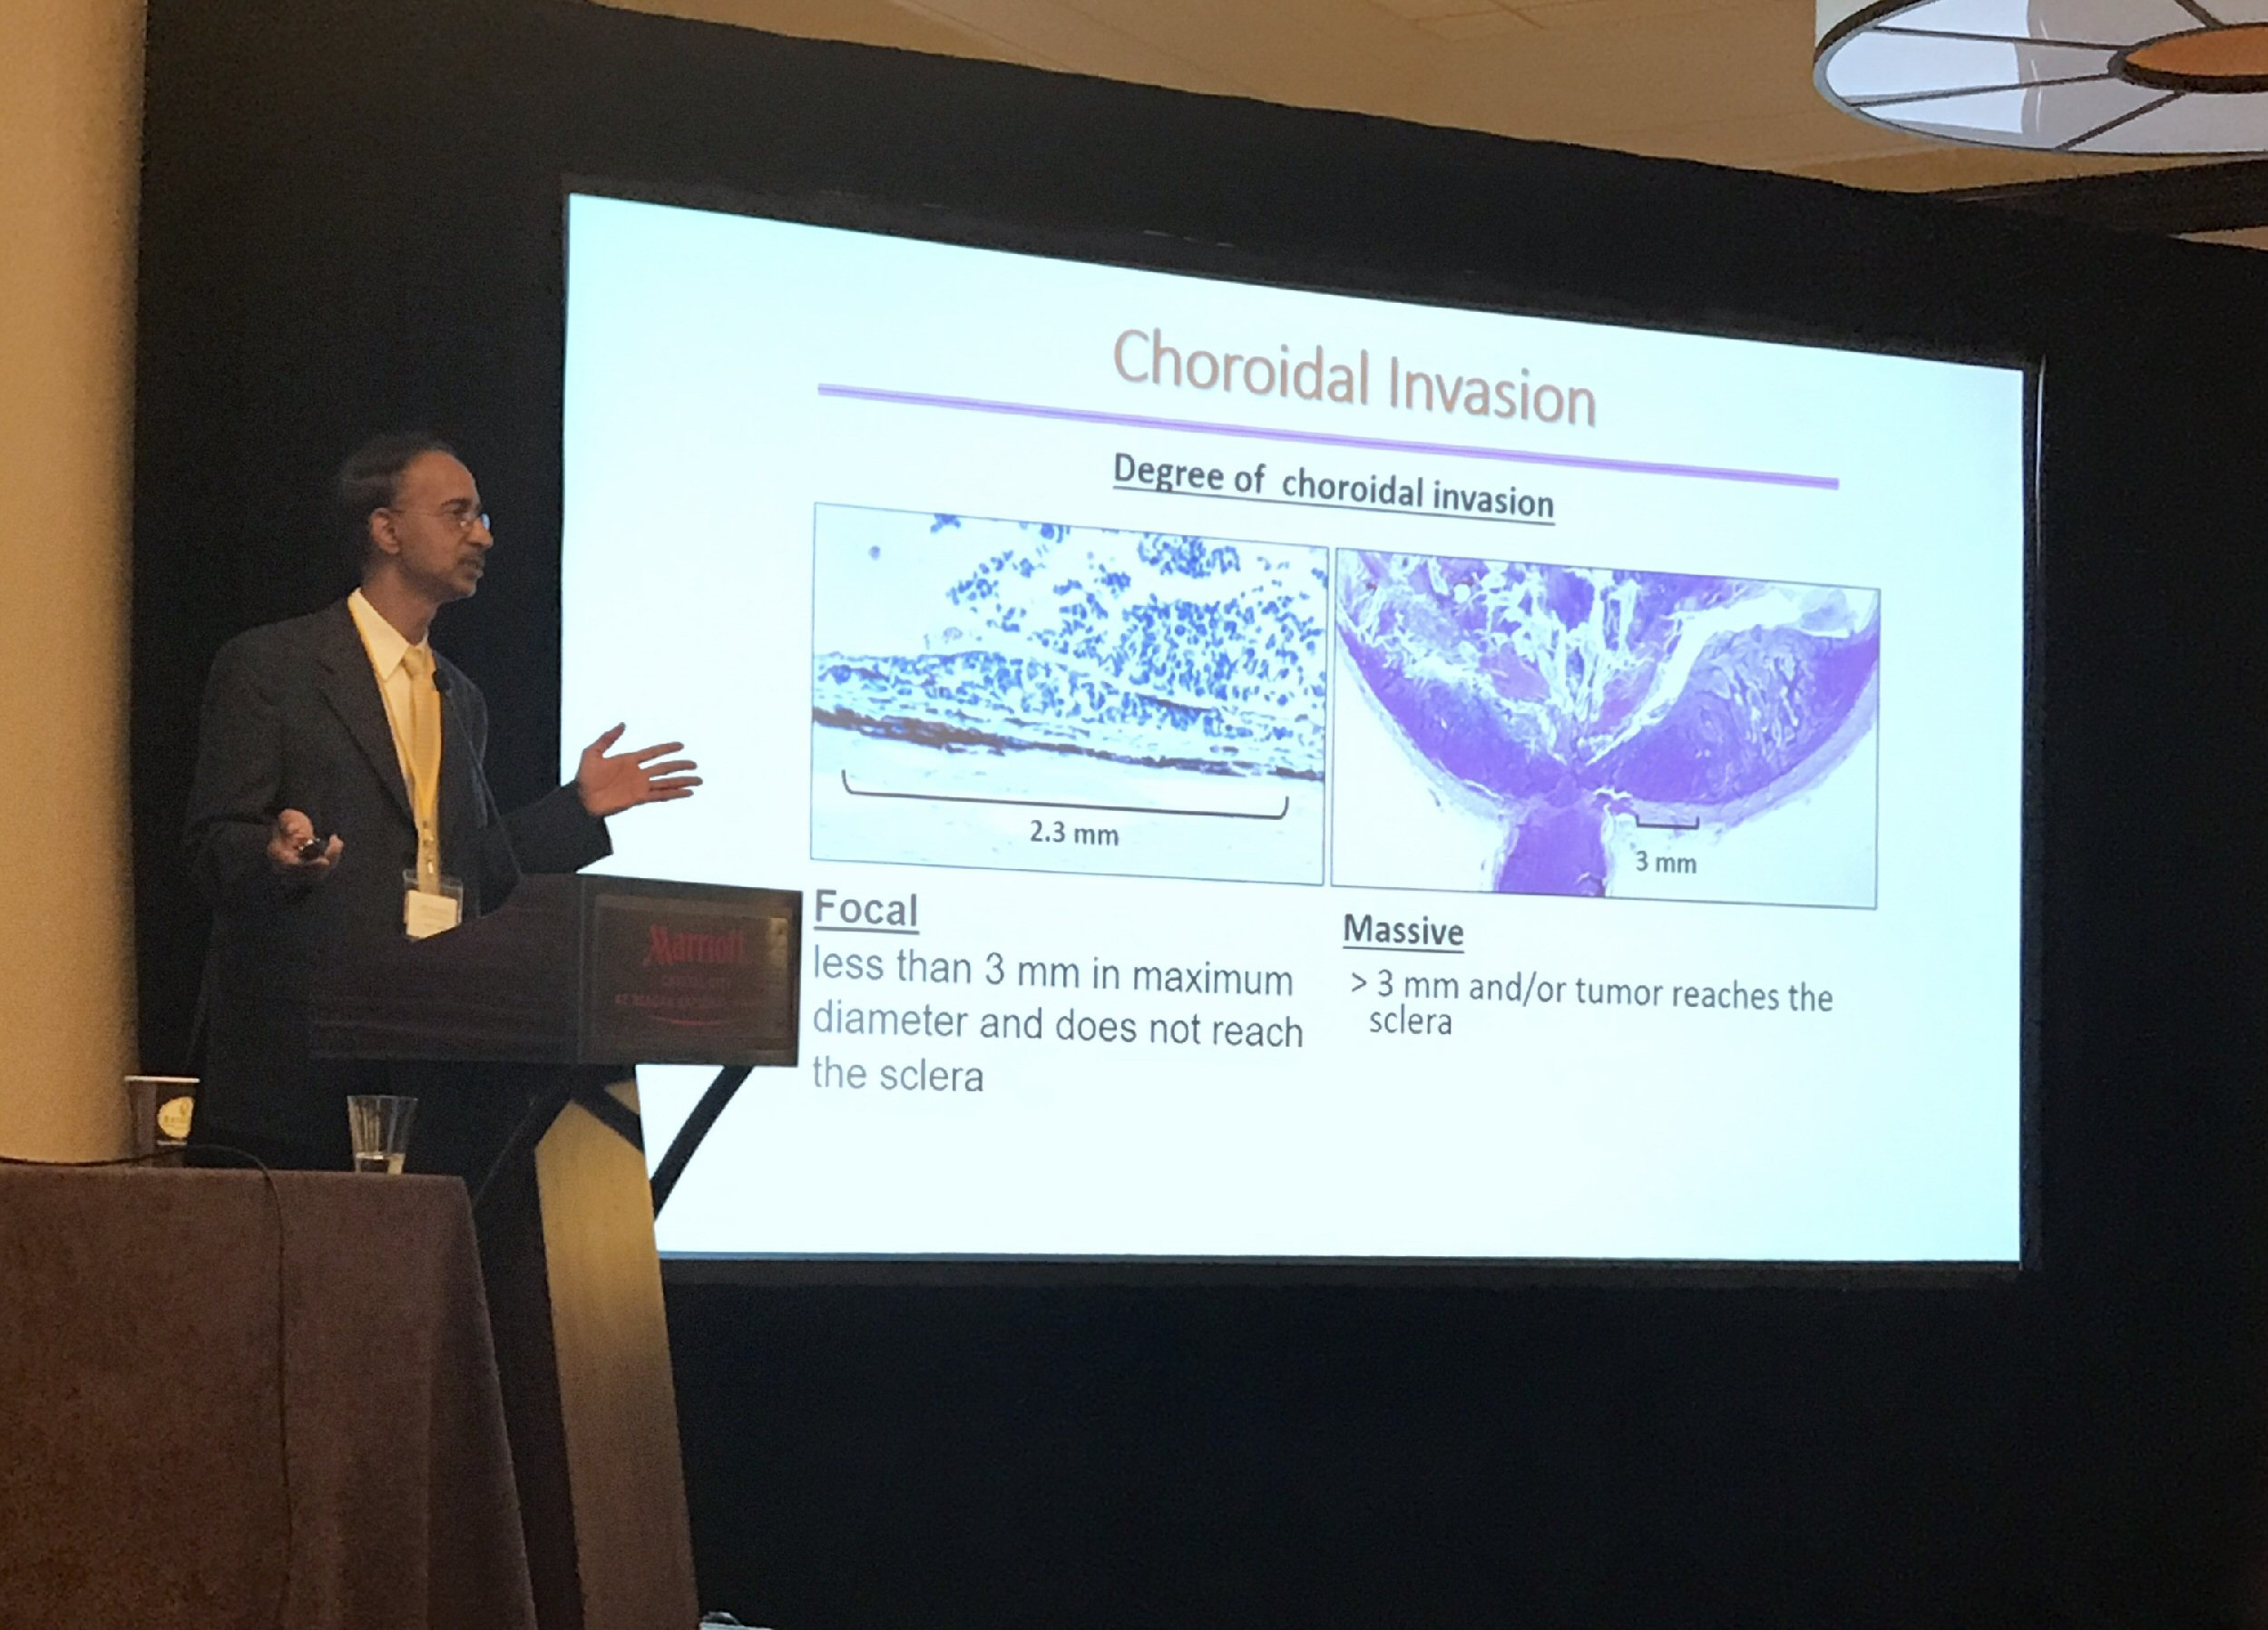 "Murali Chintagumpala explores the debated areas of retinoblastoma pathology. The slide behind him is titled ""Choroidal Invasion"" with a subheading ""Degree of Choroidal Invasion"". Descriptions below two microscopic pathology slide images read: (Left) FOCAL: Less than 3mm in maximum diameter and does not reach the sclera. (Right) MASSIVE: >3mm and / or tumor reaches the sclera."